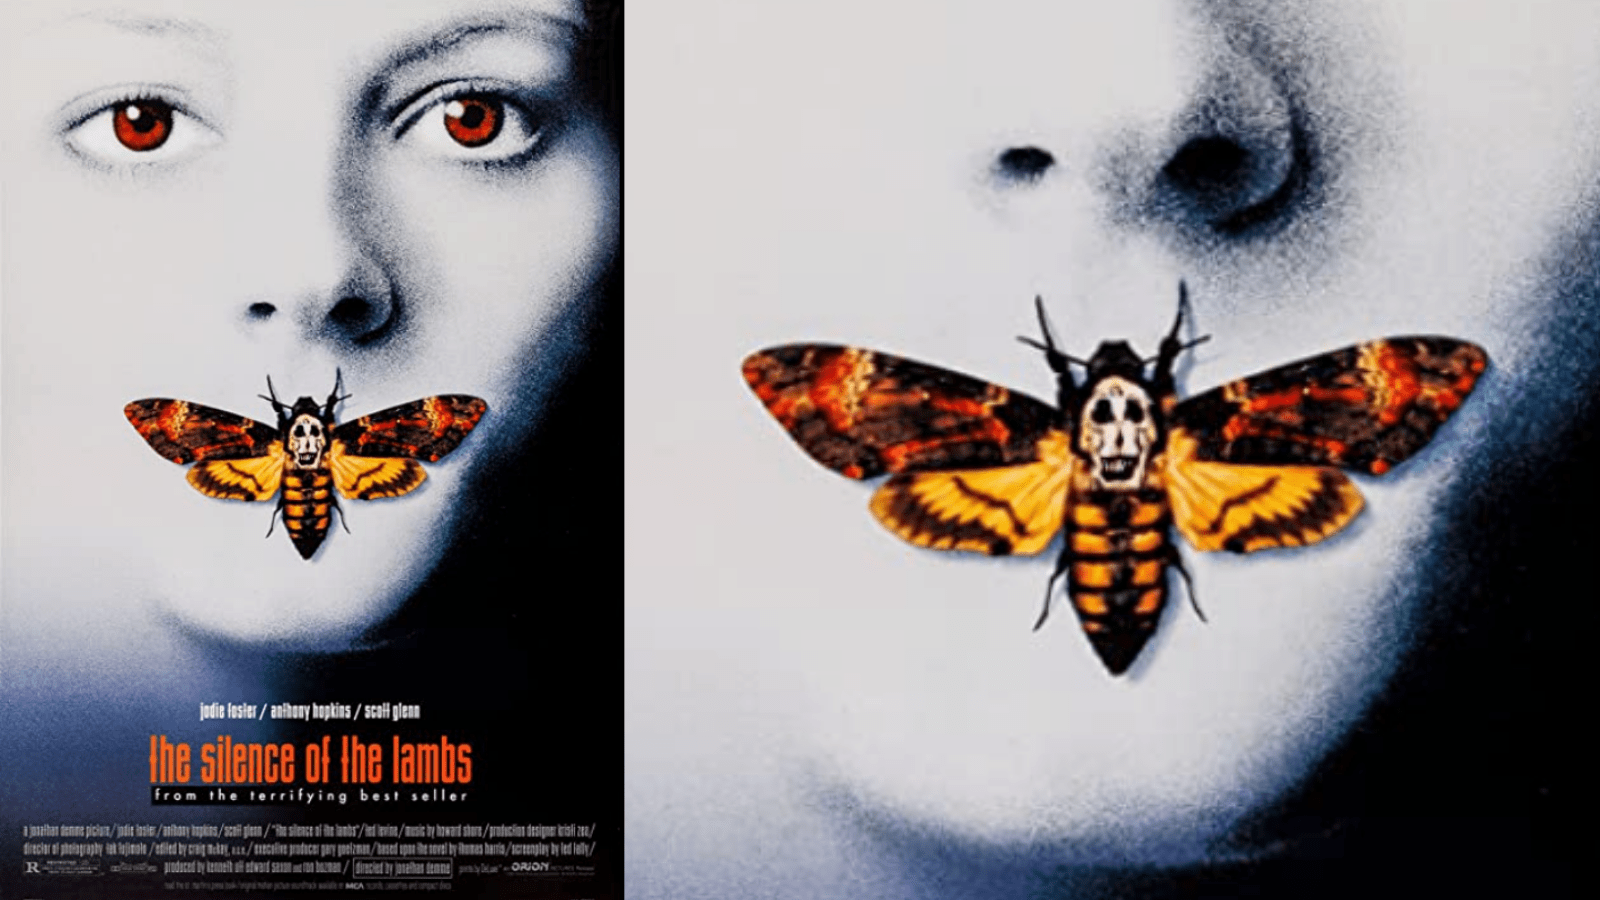 Is This True About Moth on 'Silence of the Lambs' Poster?